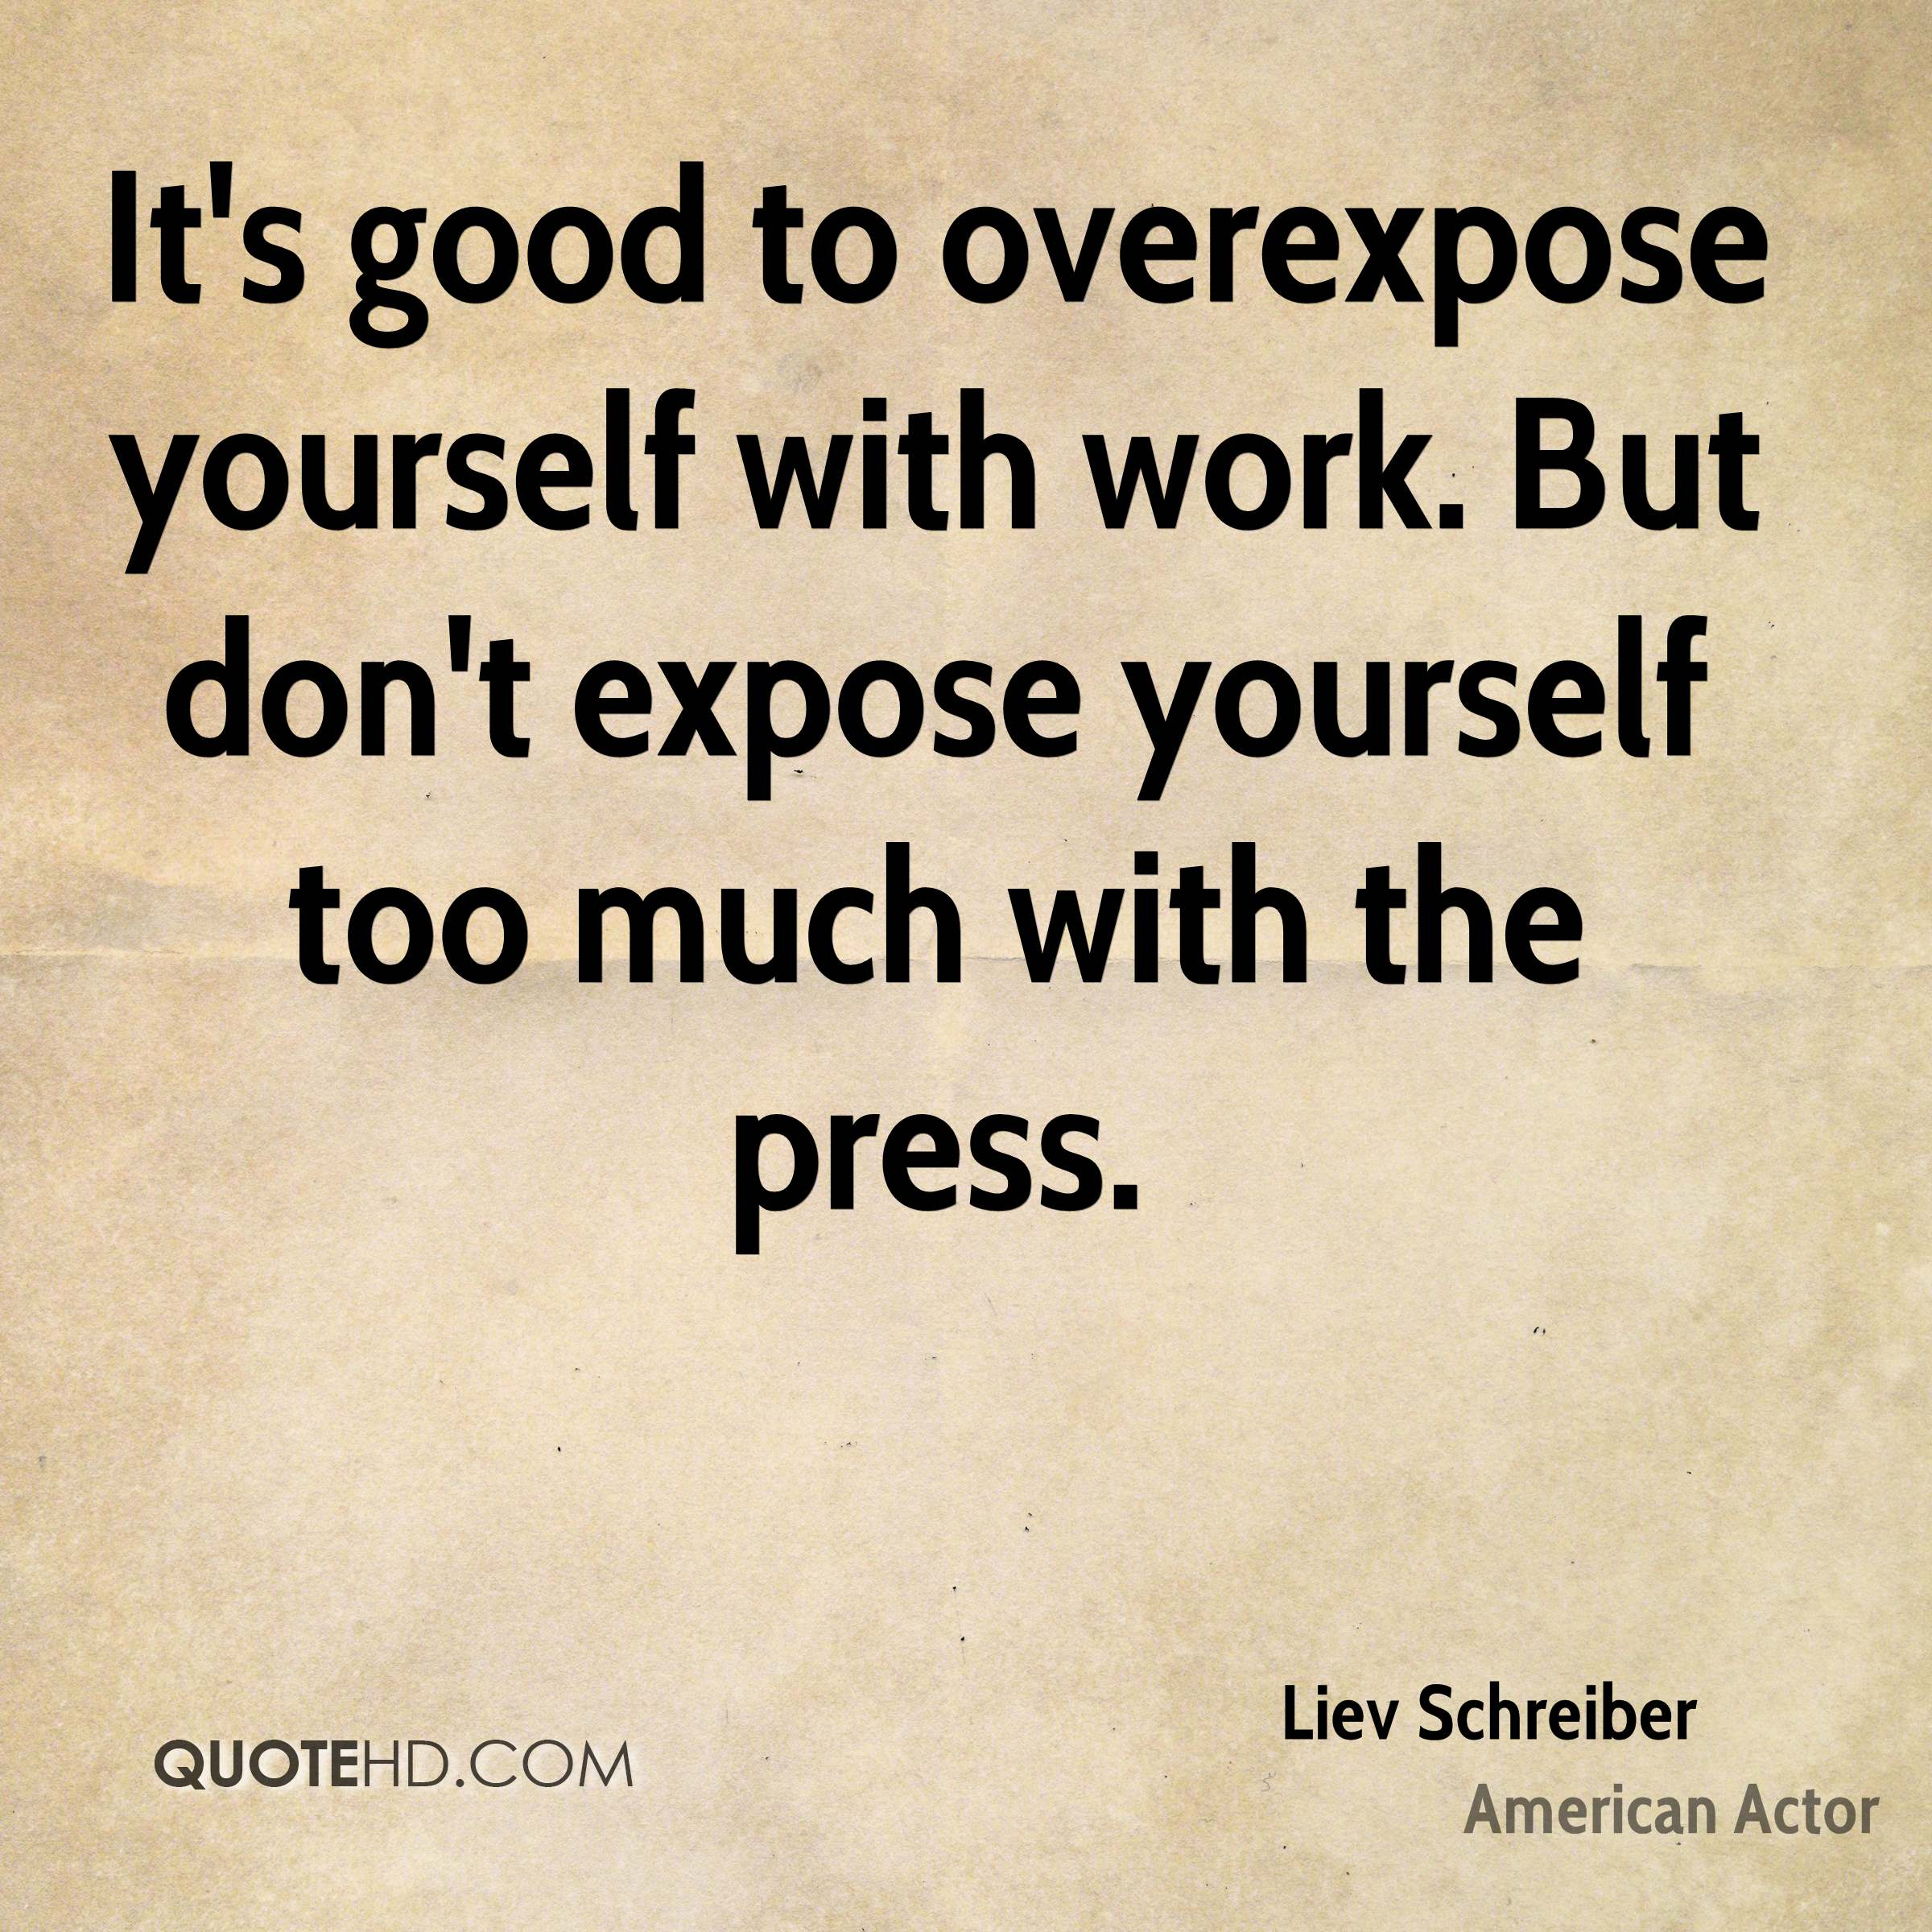 liev schreiber quotes quotehd it s good to overexpose yourself work but don t expose yourself too much